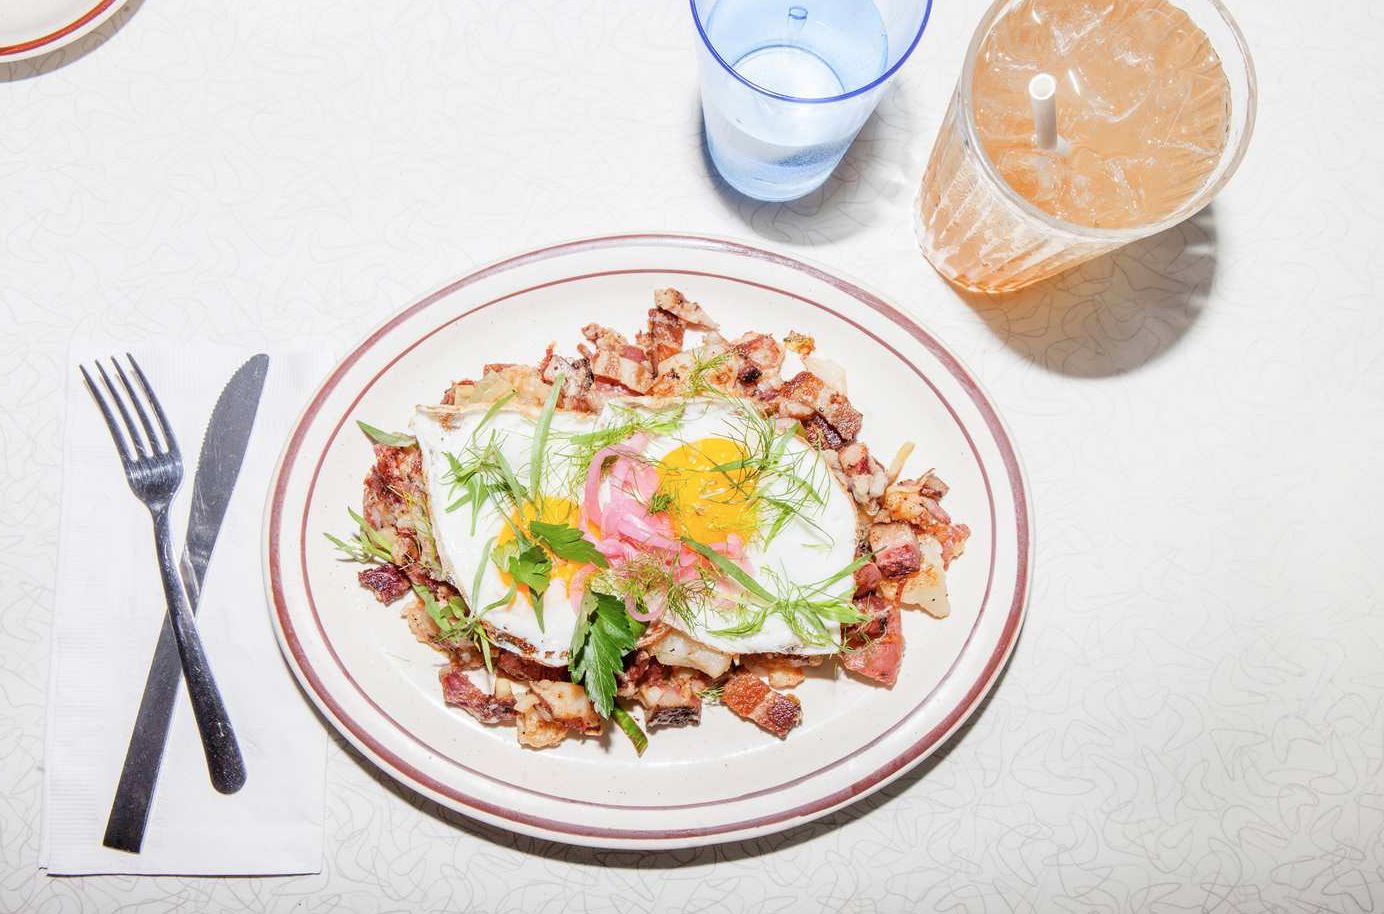 This Is America's Most Exciting 'New' Diner